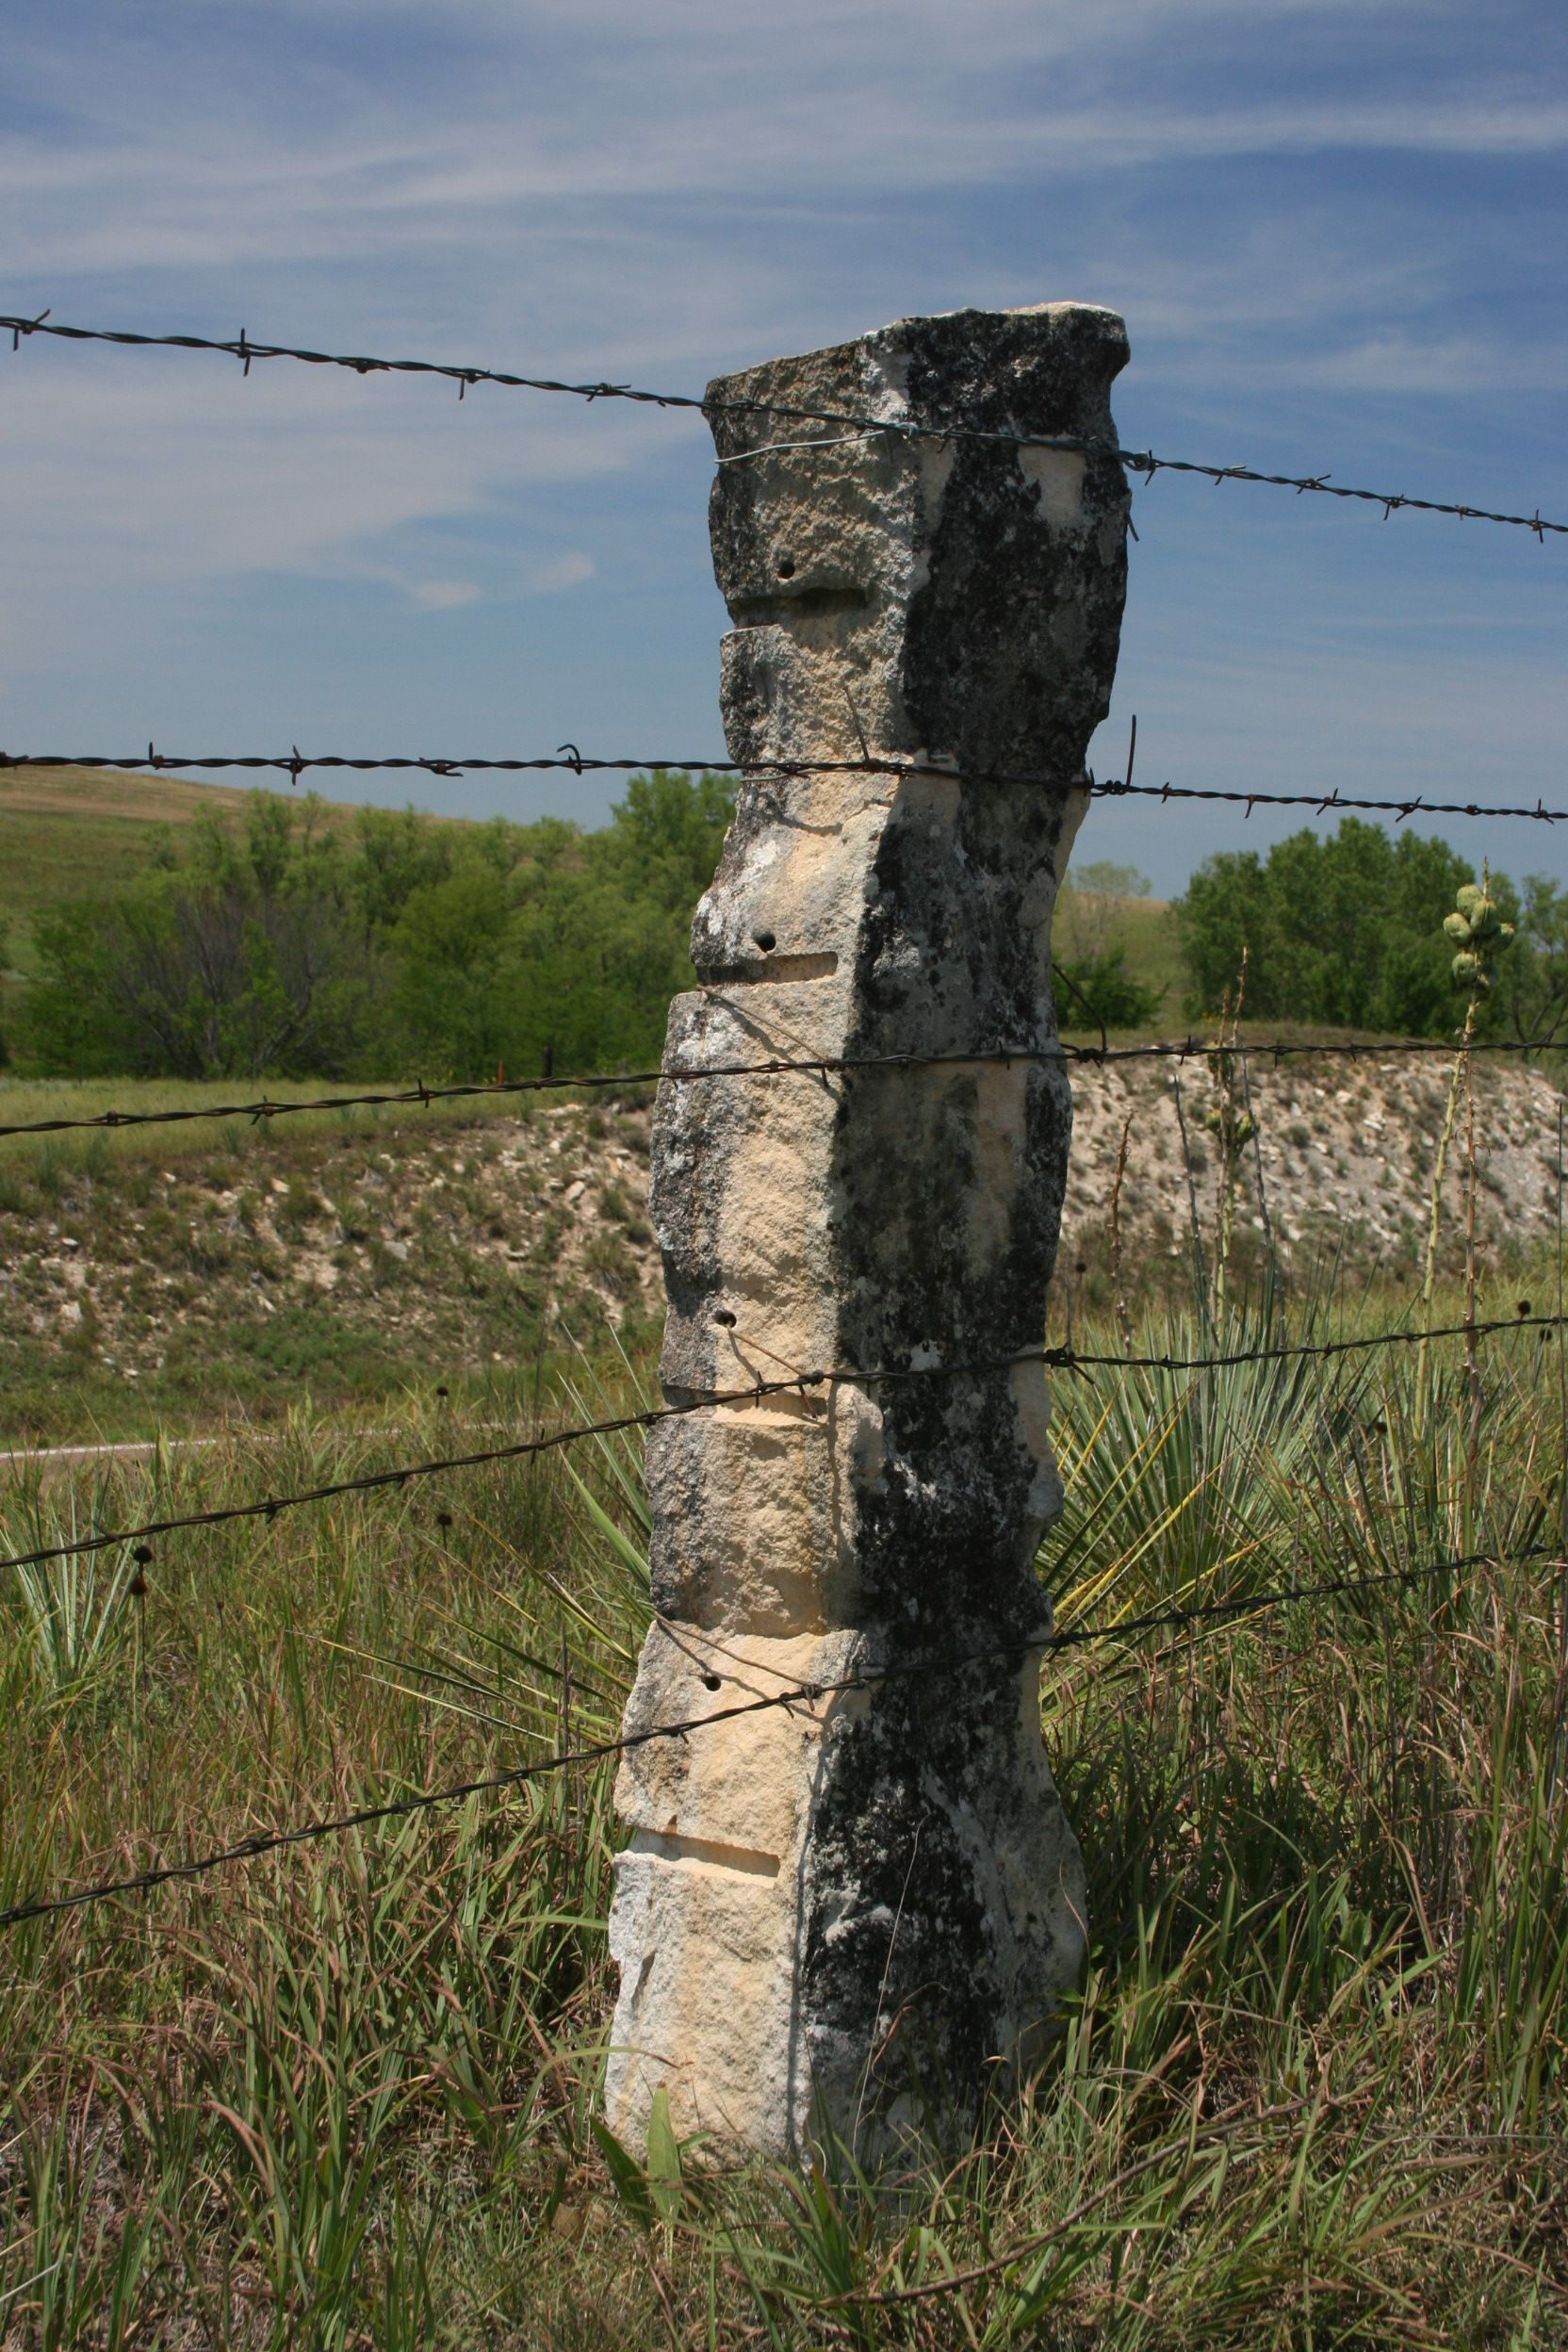 Piketpaaltjes Gamma A Stone Fence Post North Of Russell In Russell County